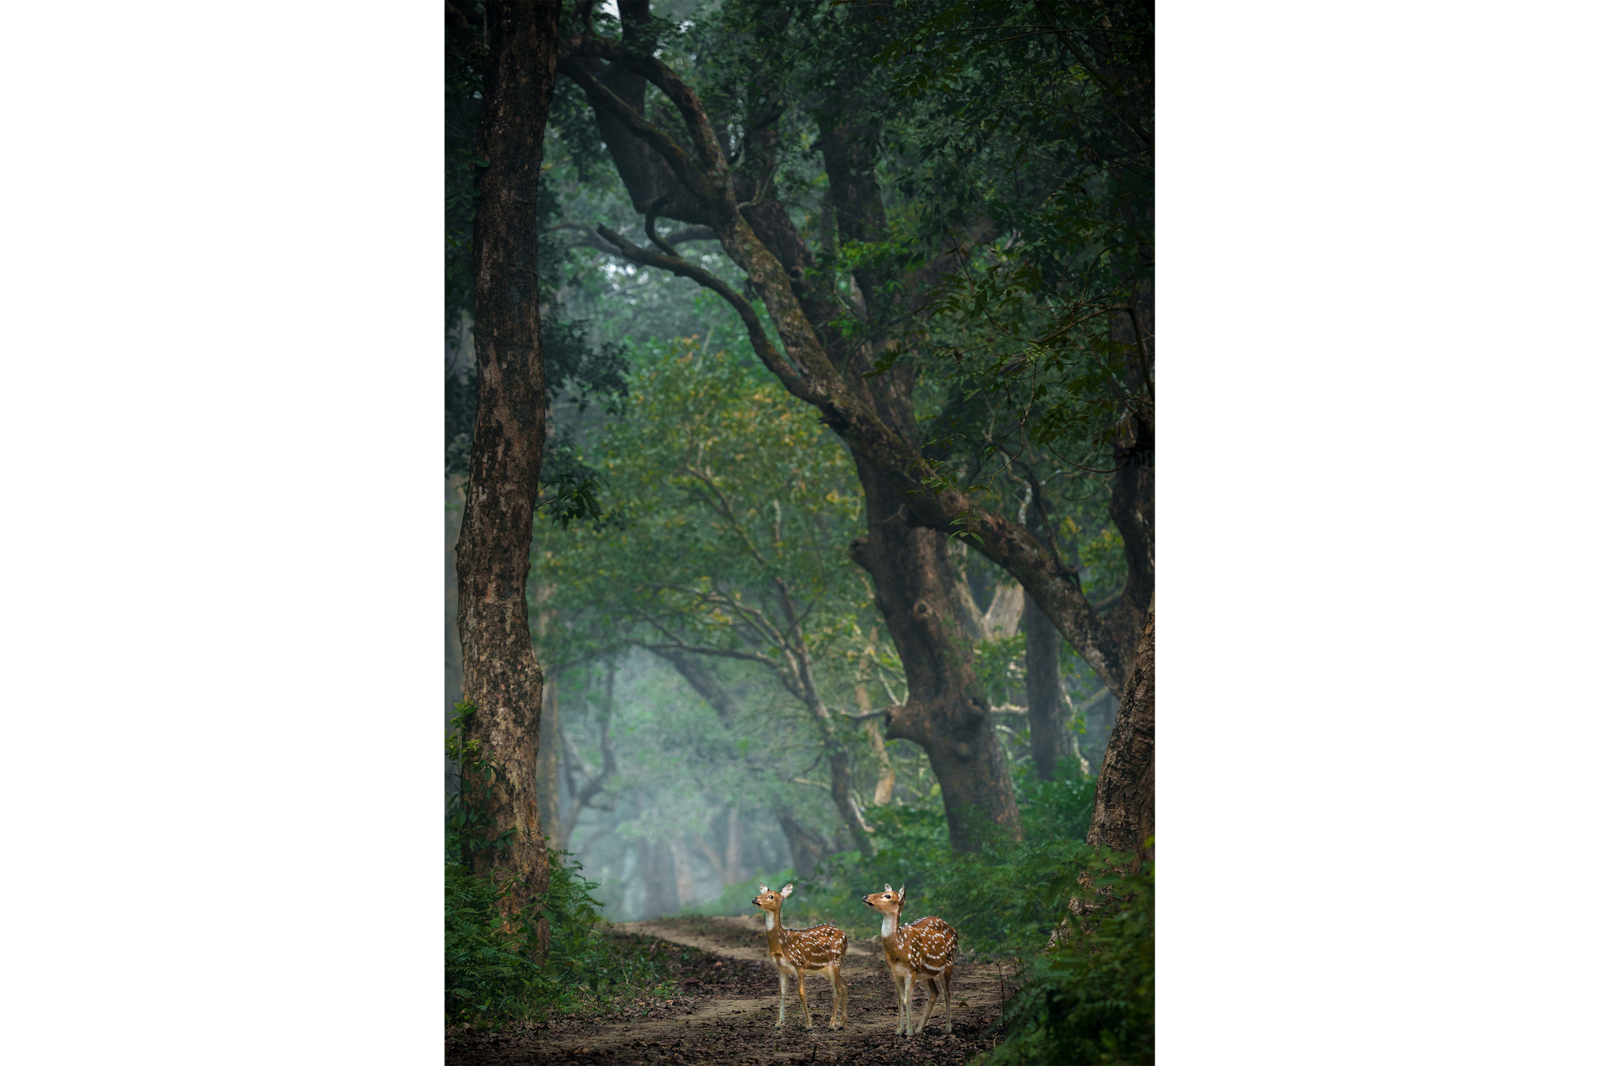 deers in a forest alpha 9